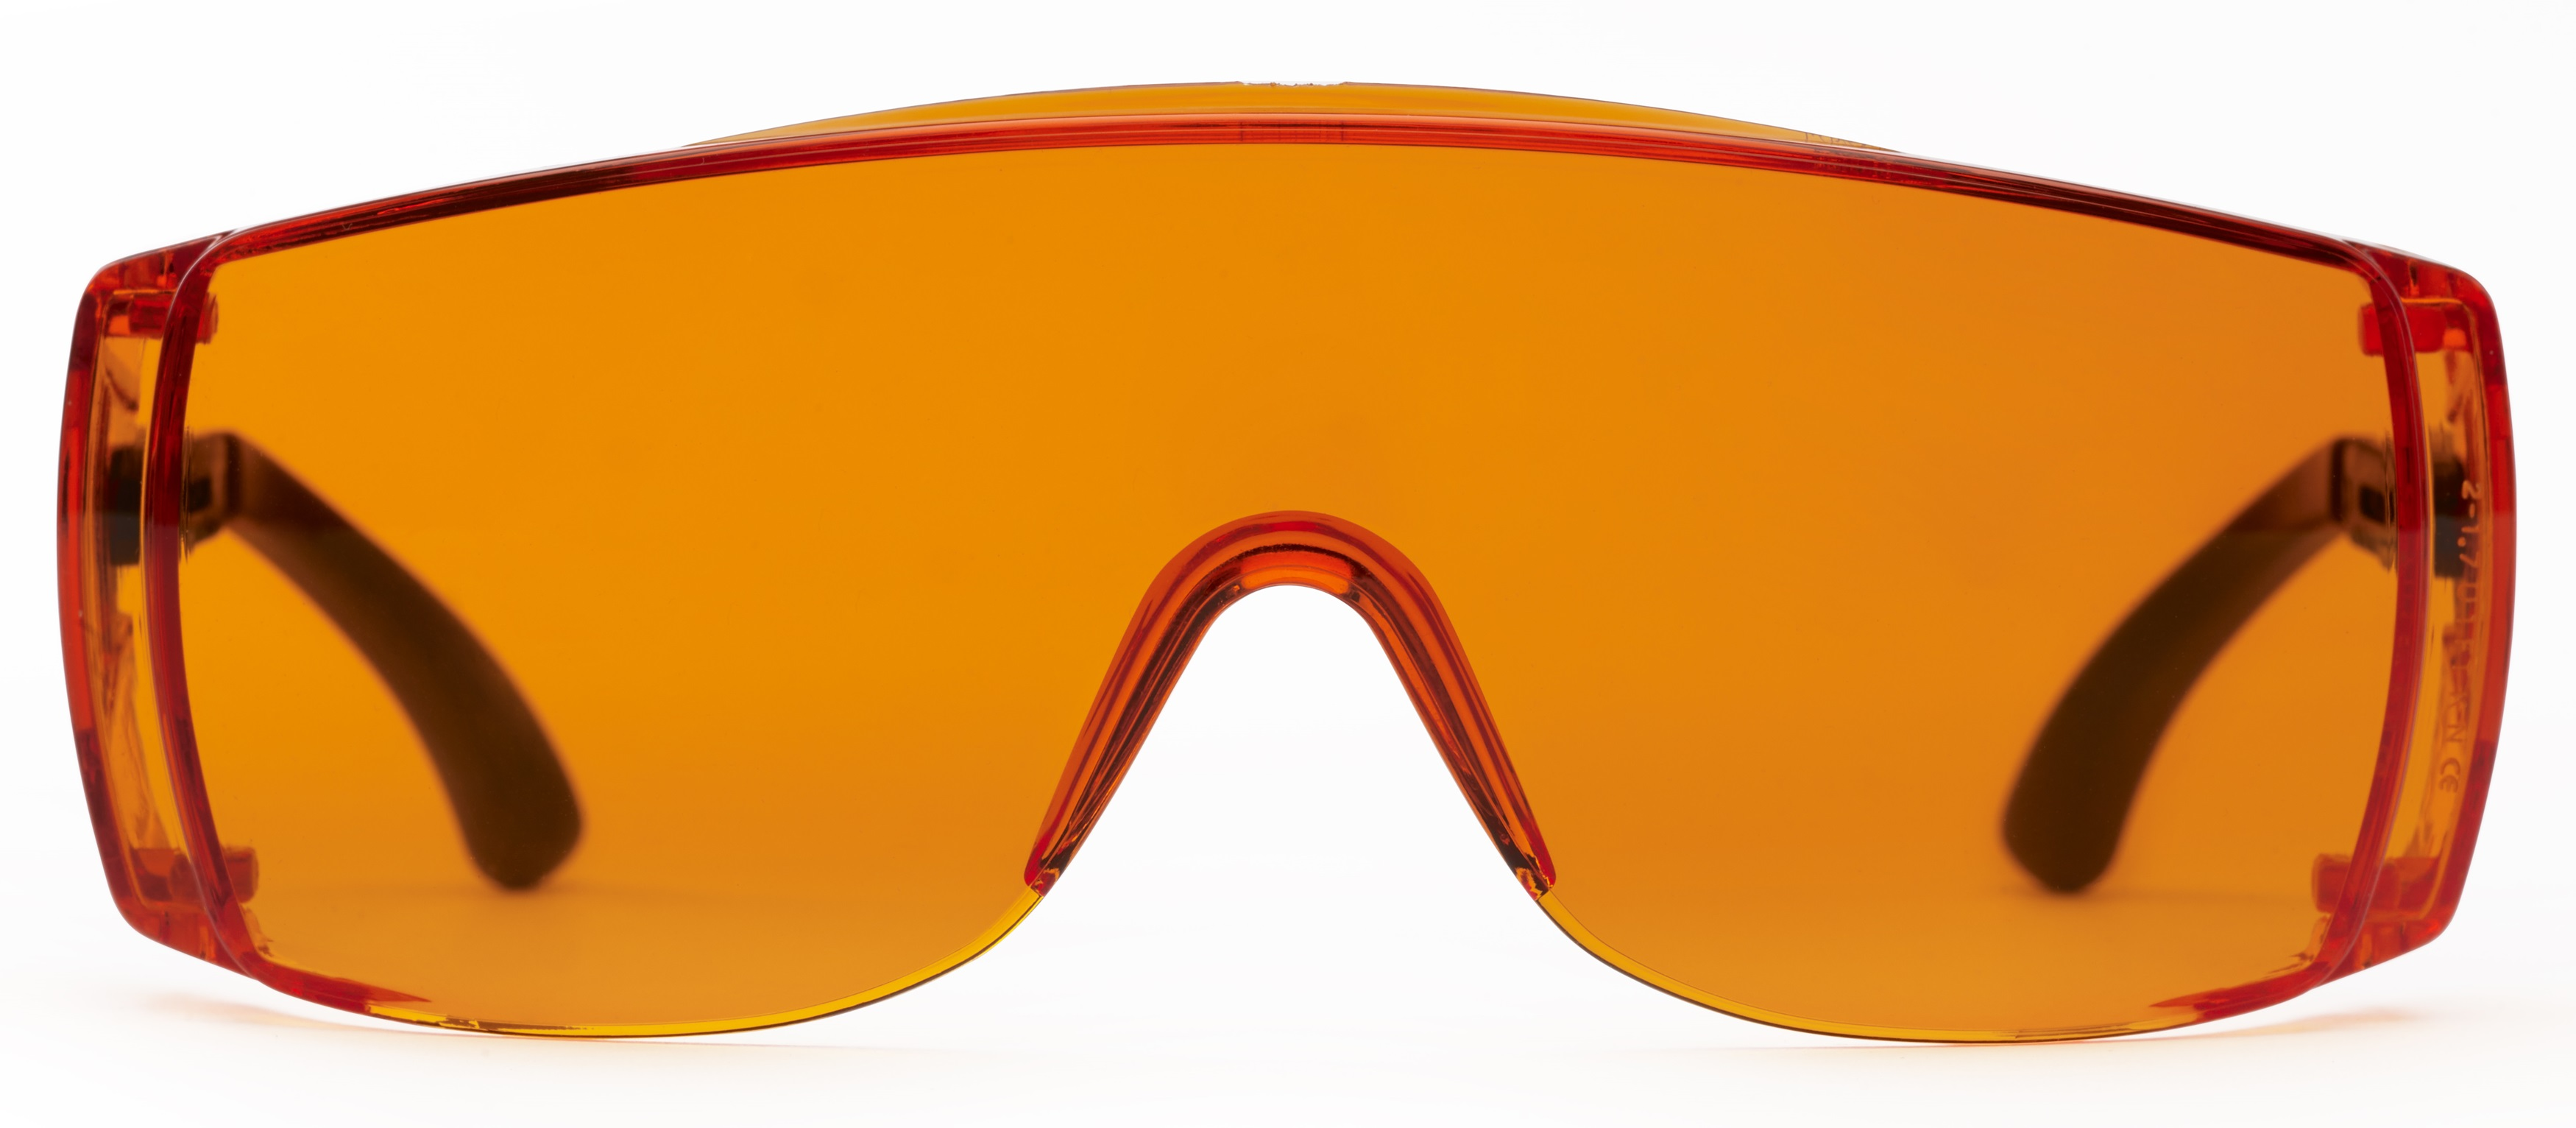 Glaligora Monoart Light orange glasses védőszemüveg